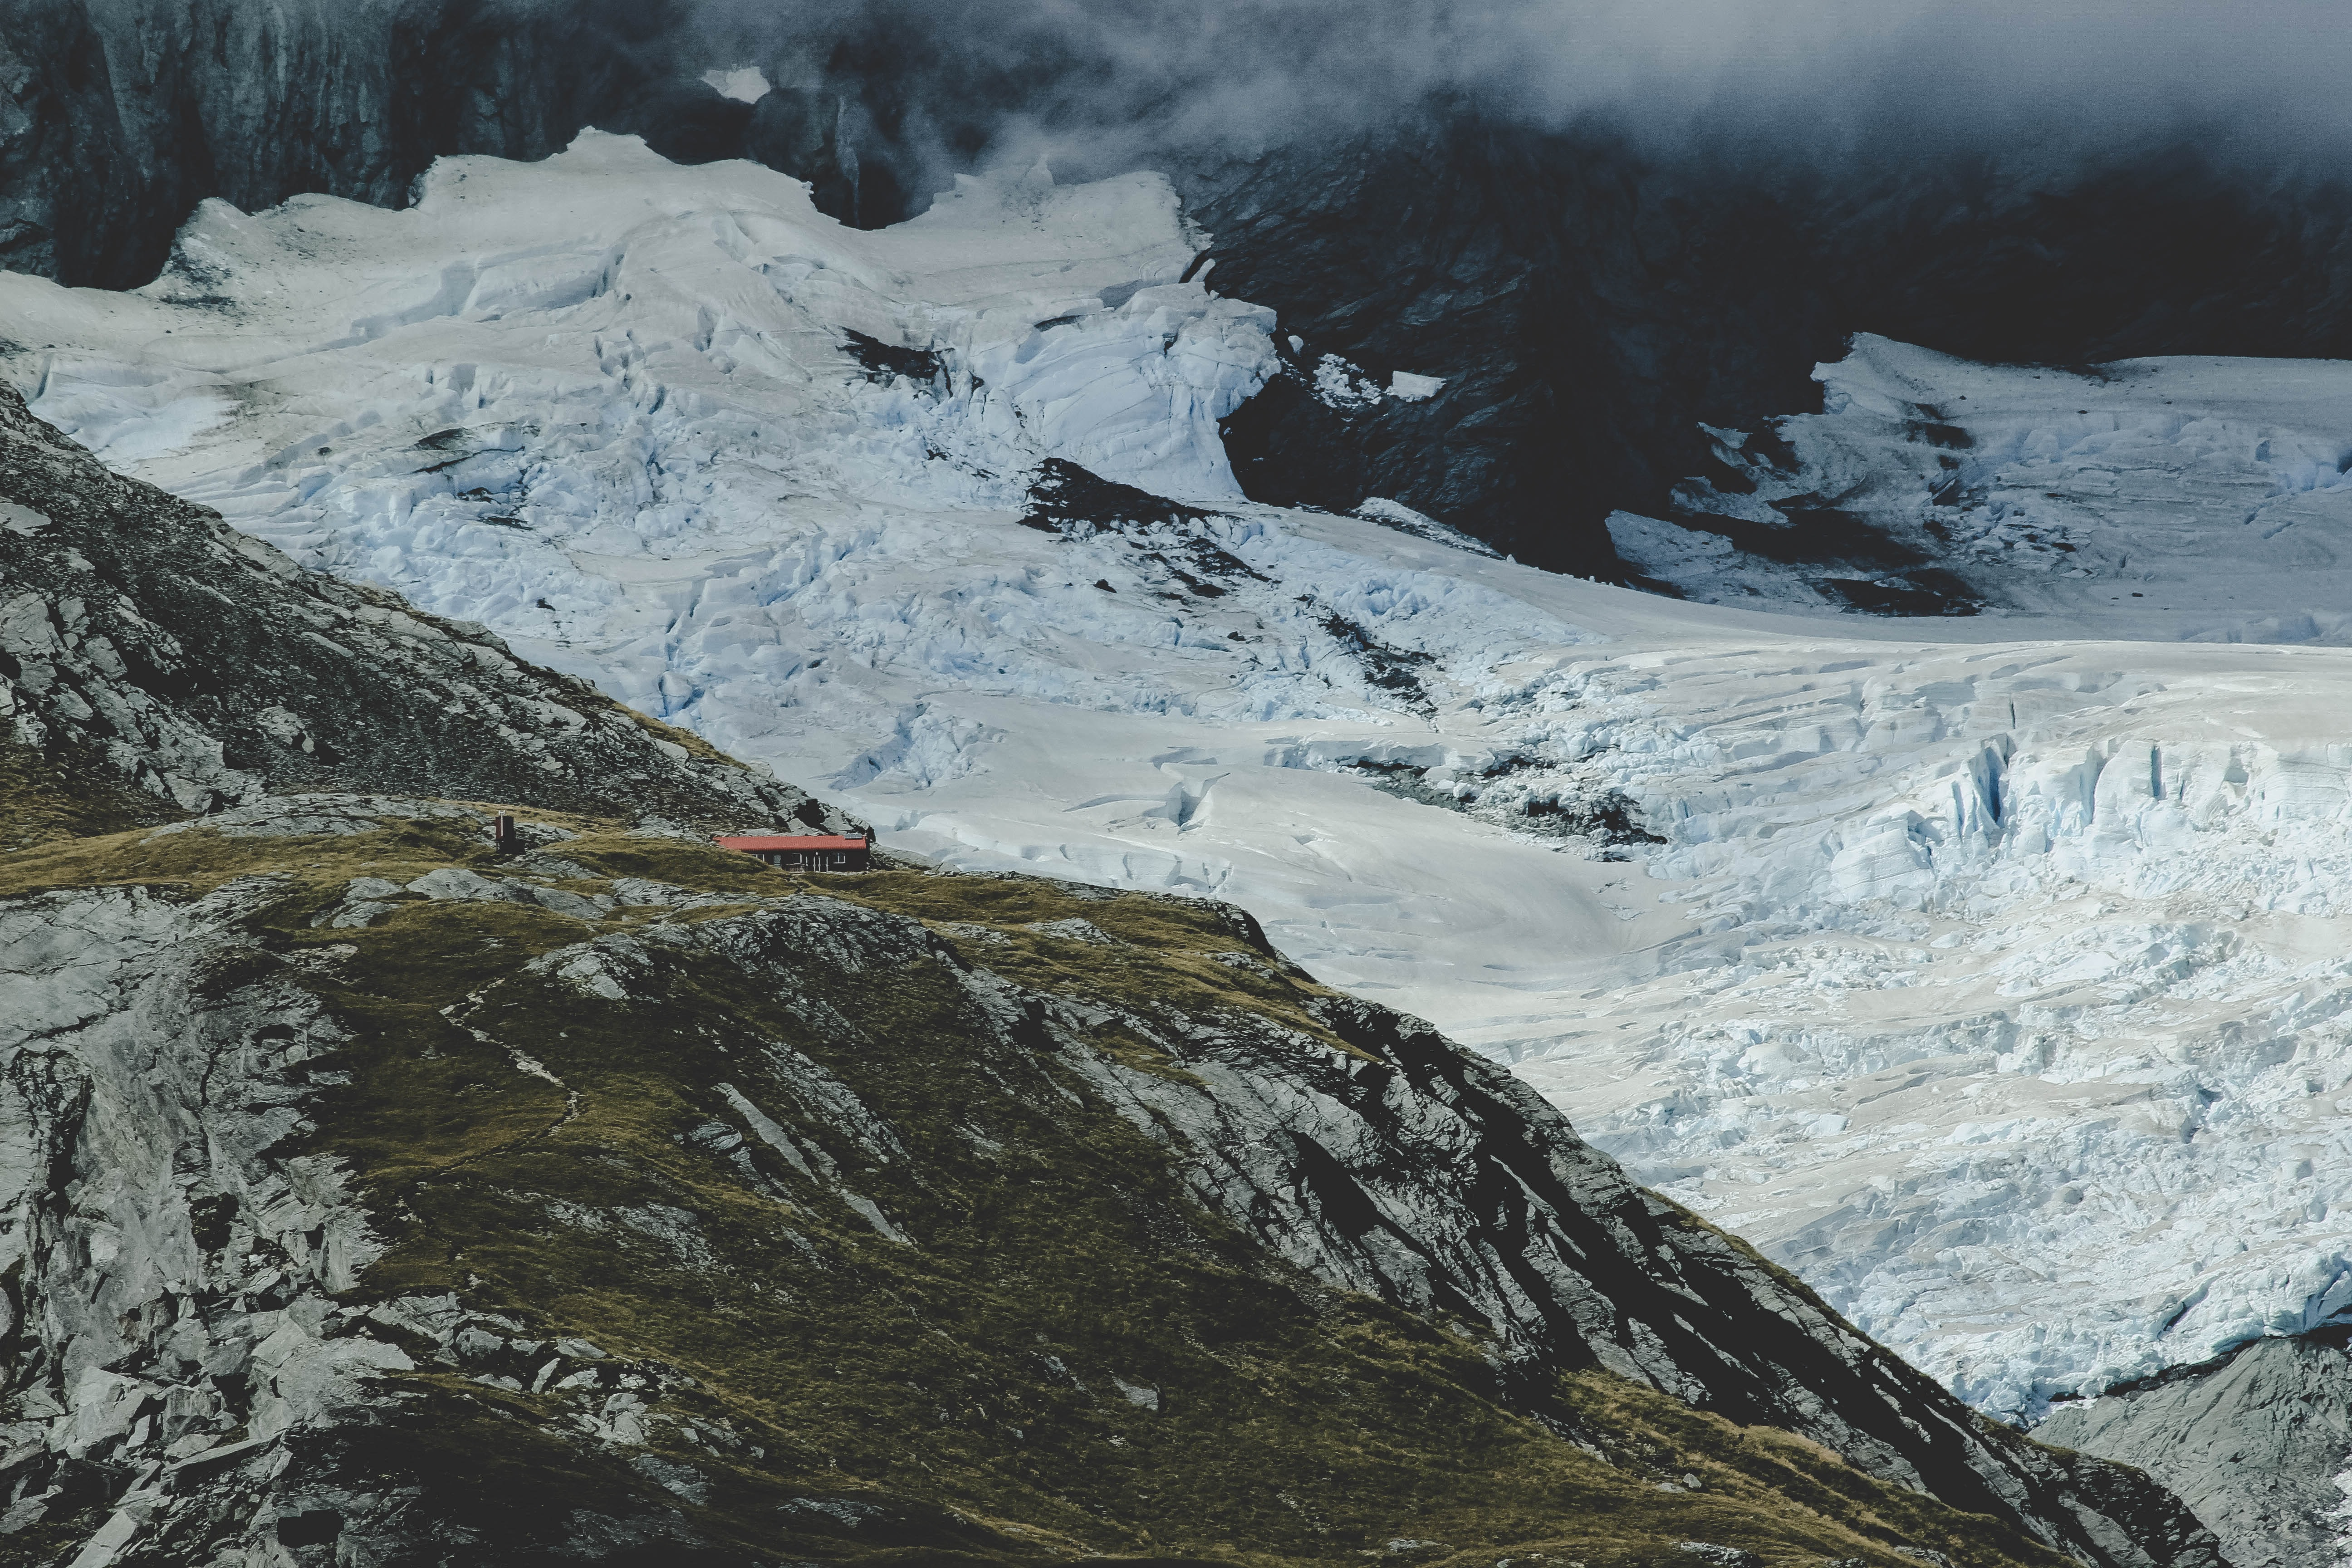 Snowy hills and grassy mountains in Mount Aspiring National Park